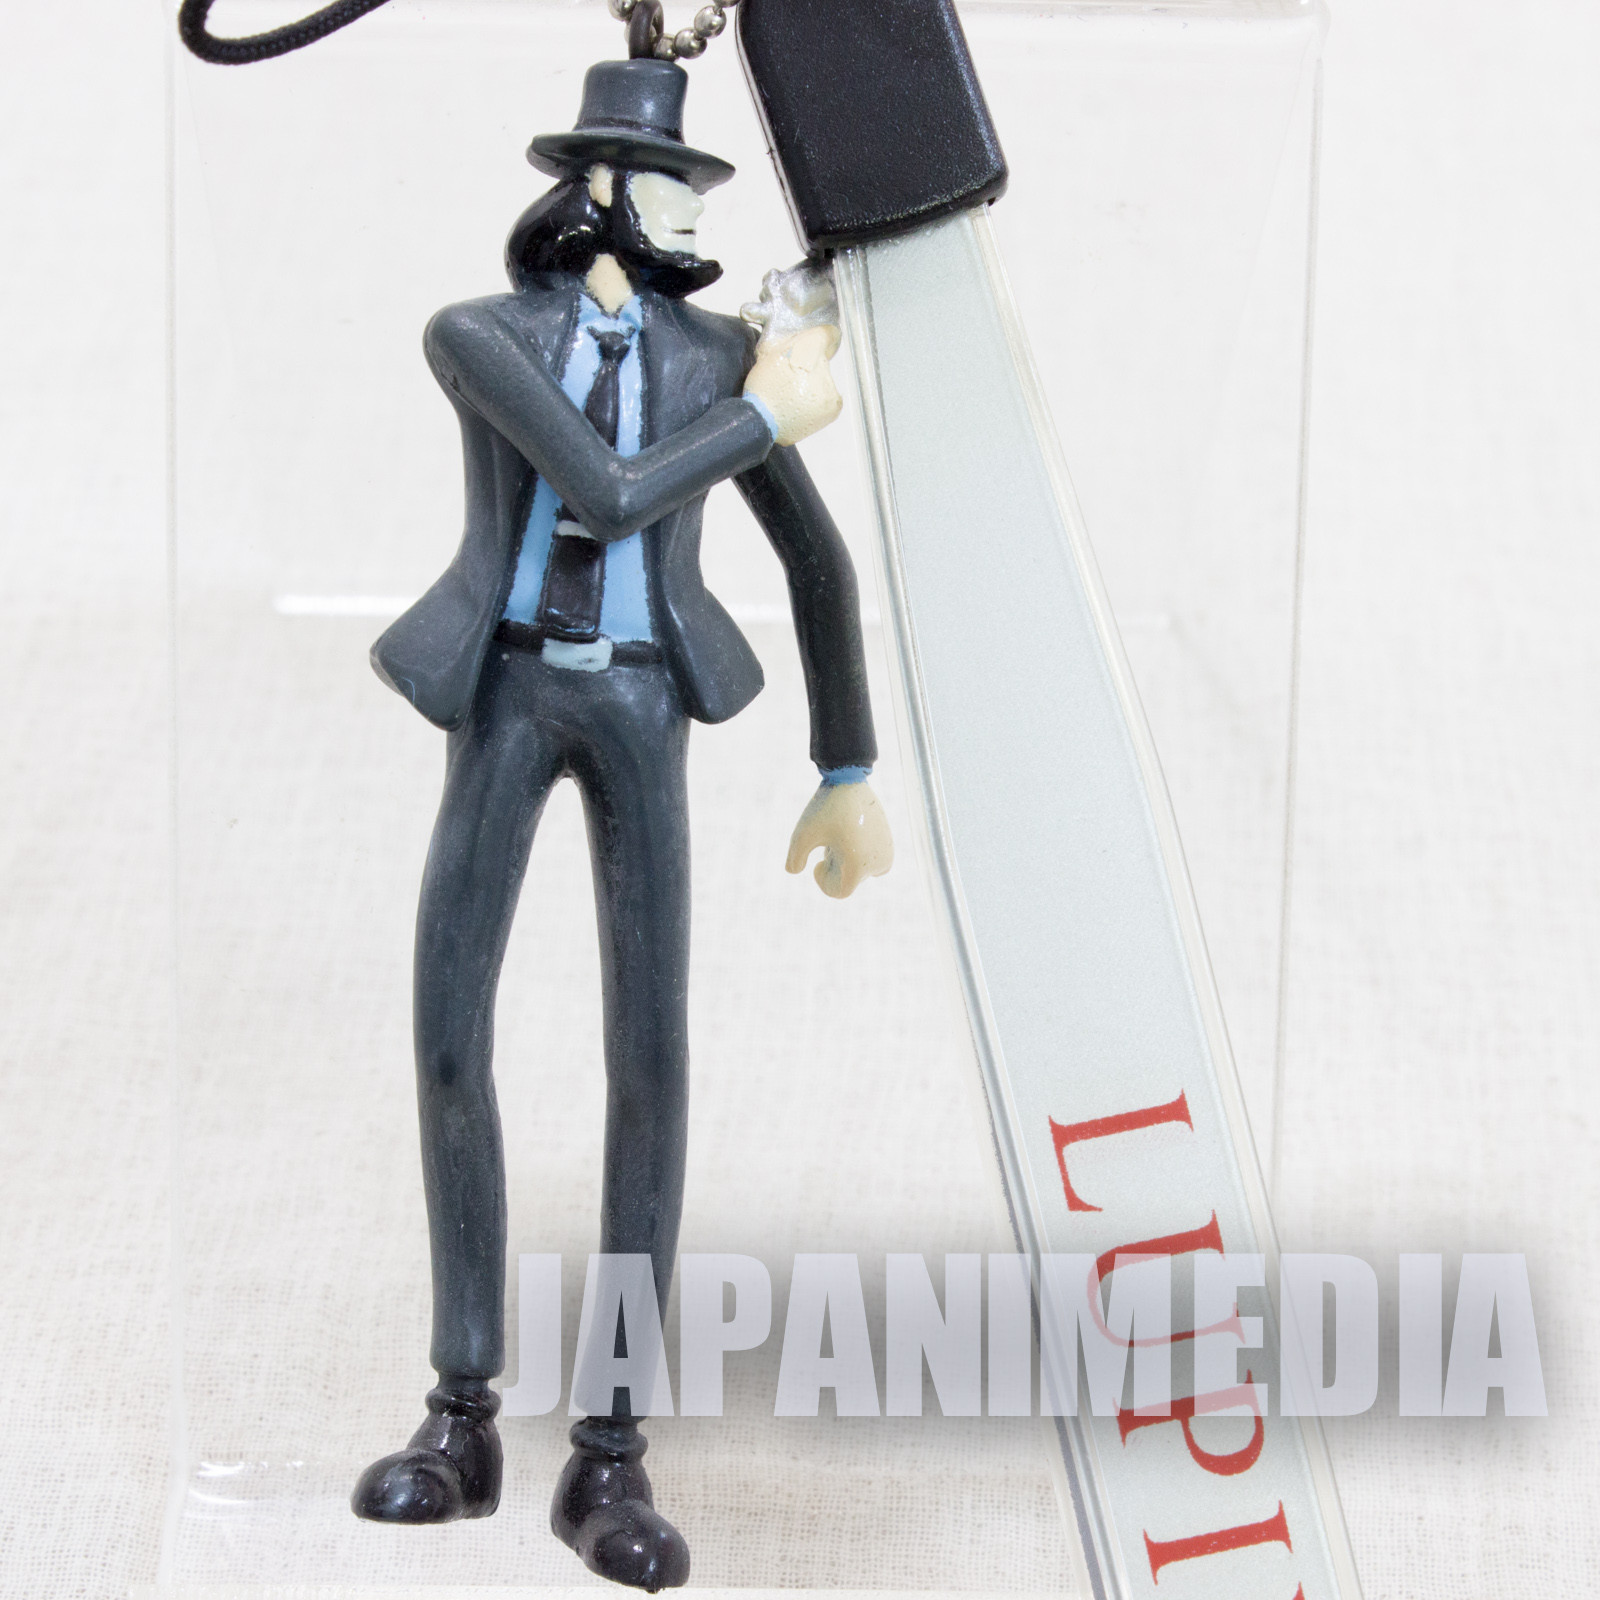 Lupin the Third (3rd) Jigen Daisuke Figure Strap JAPAN ANIME